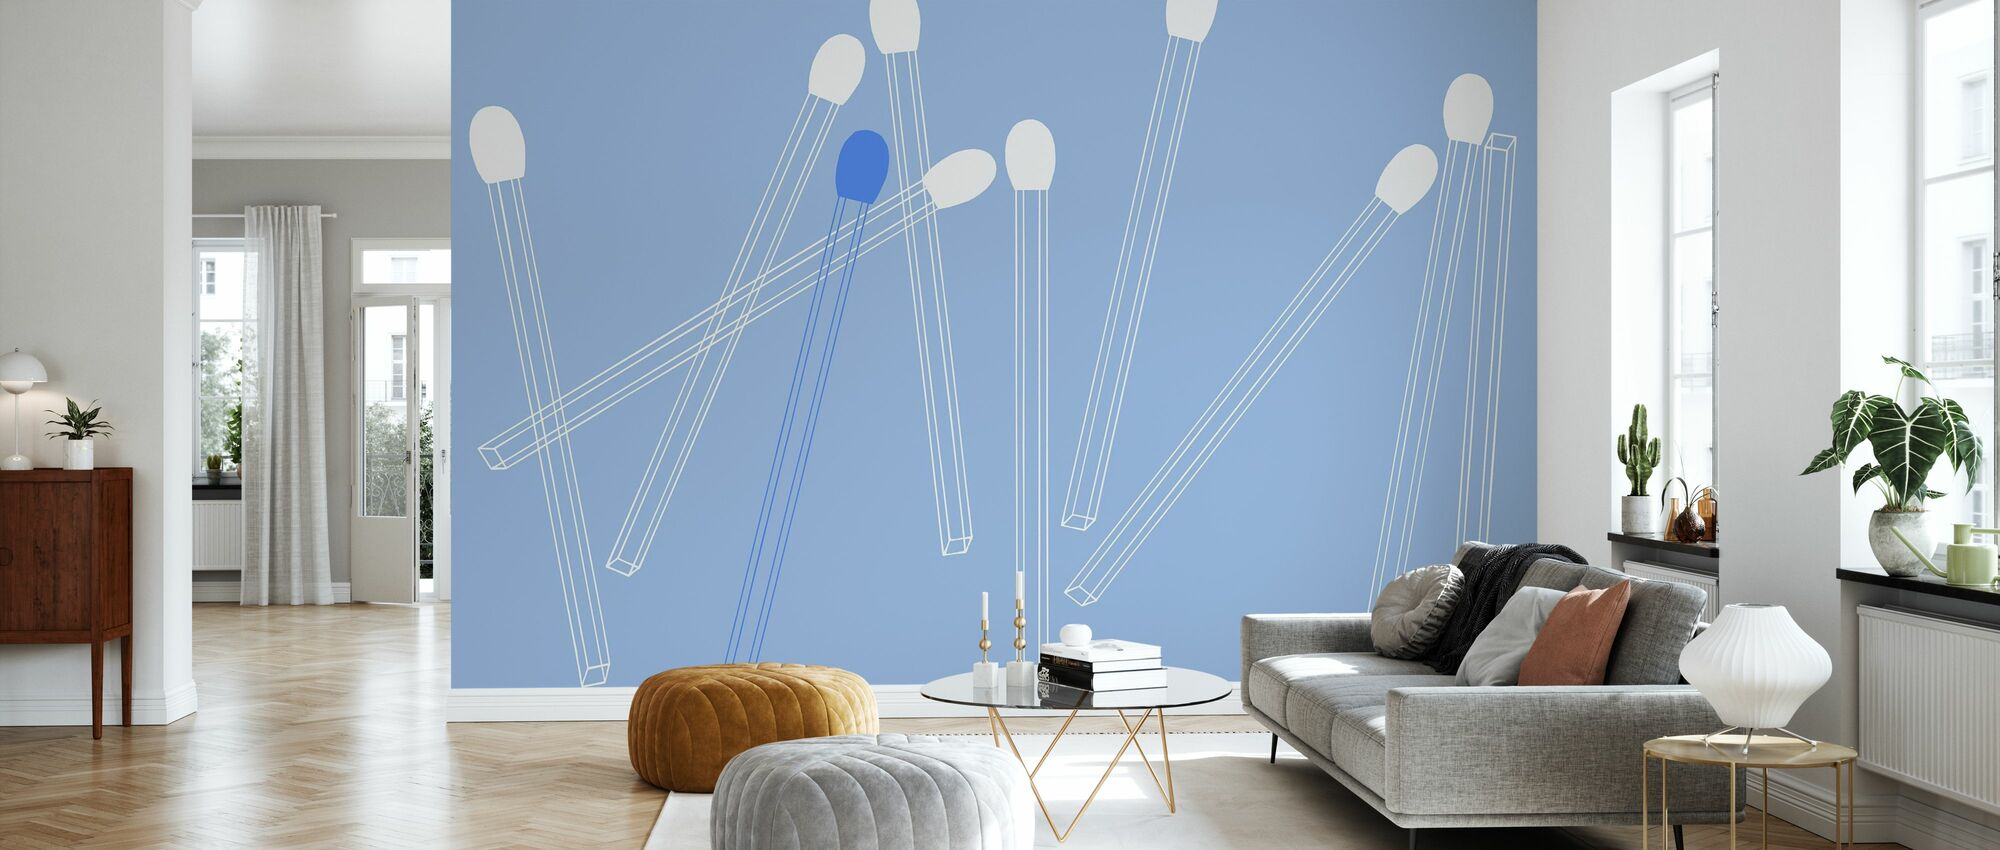 Matching Lines - Chirpy Blue - Wallpaper - Living Room